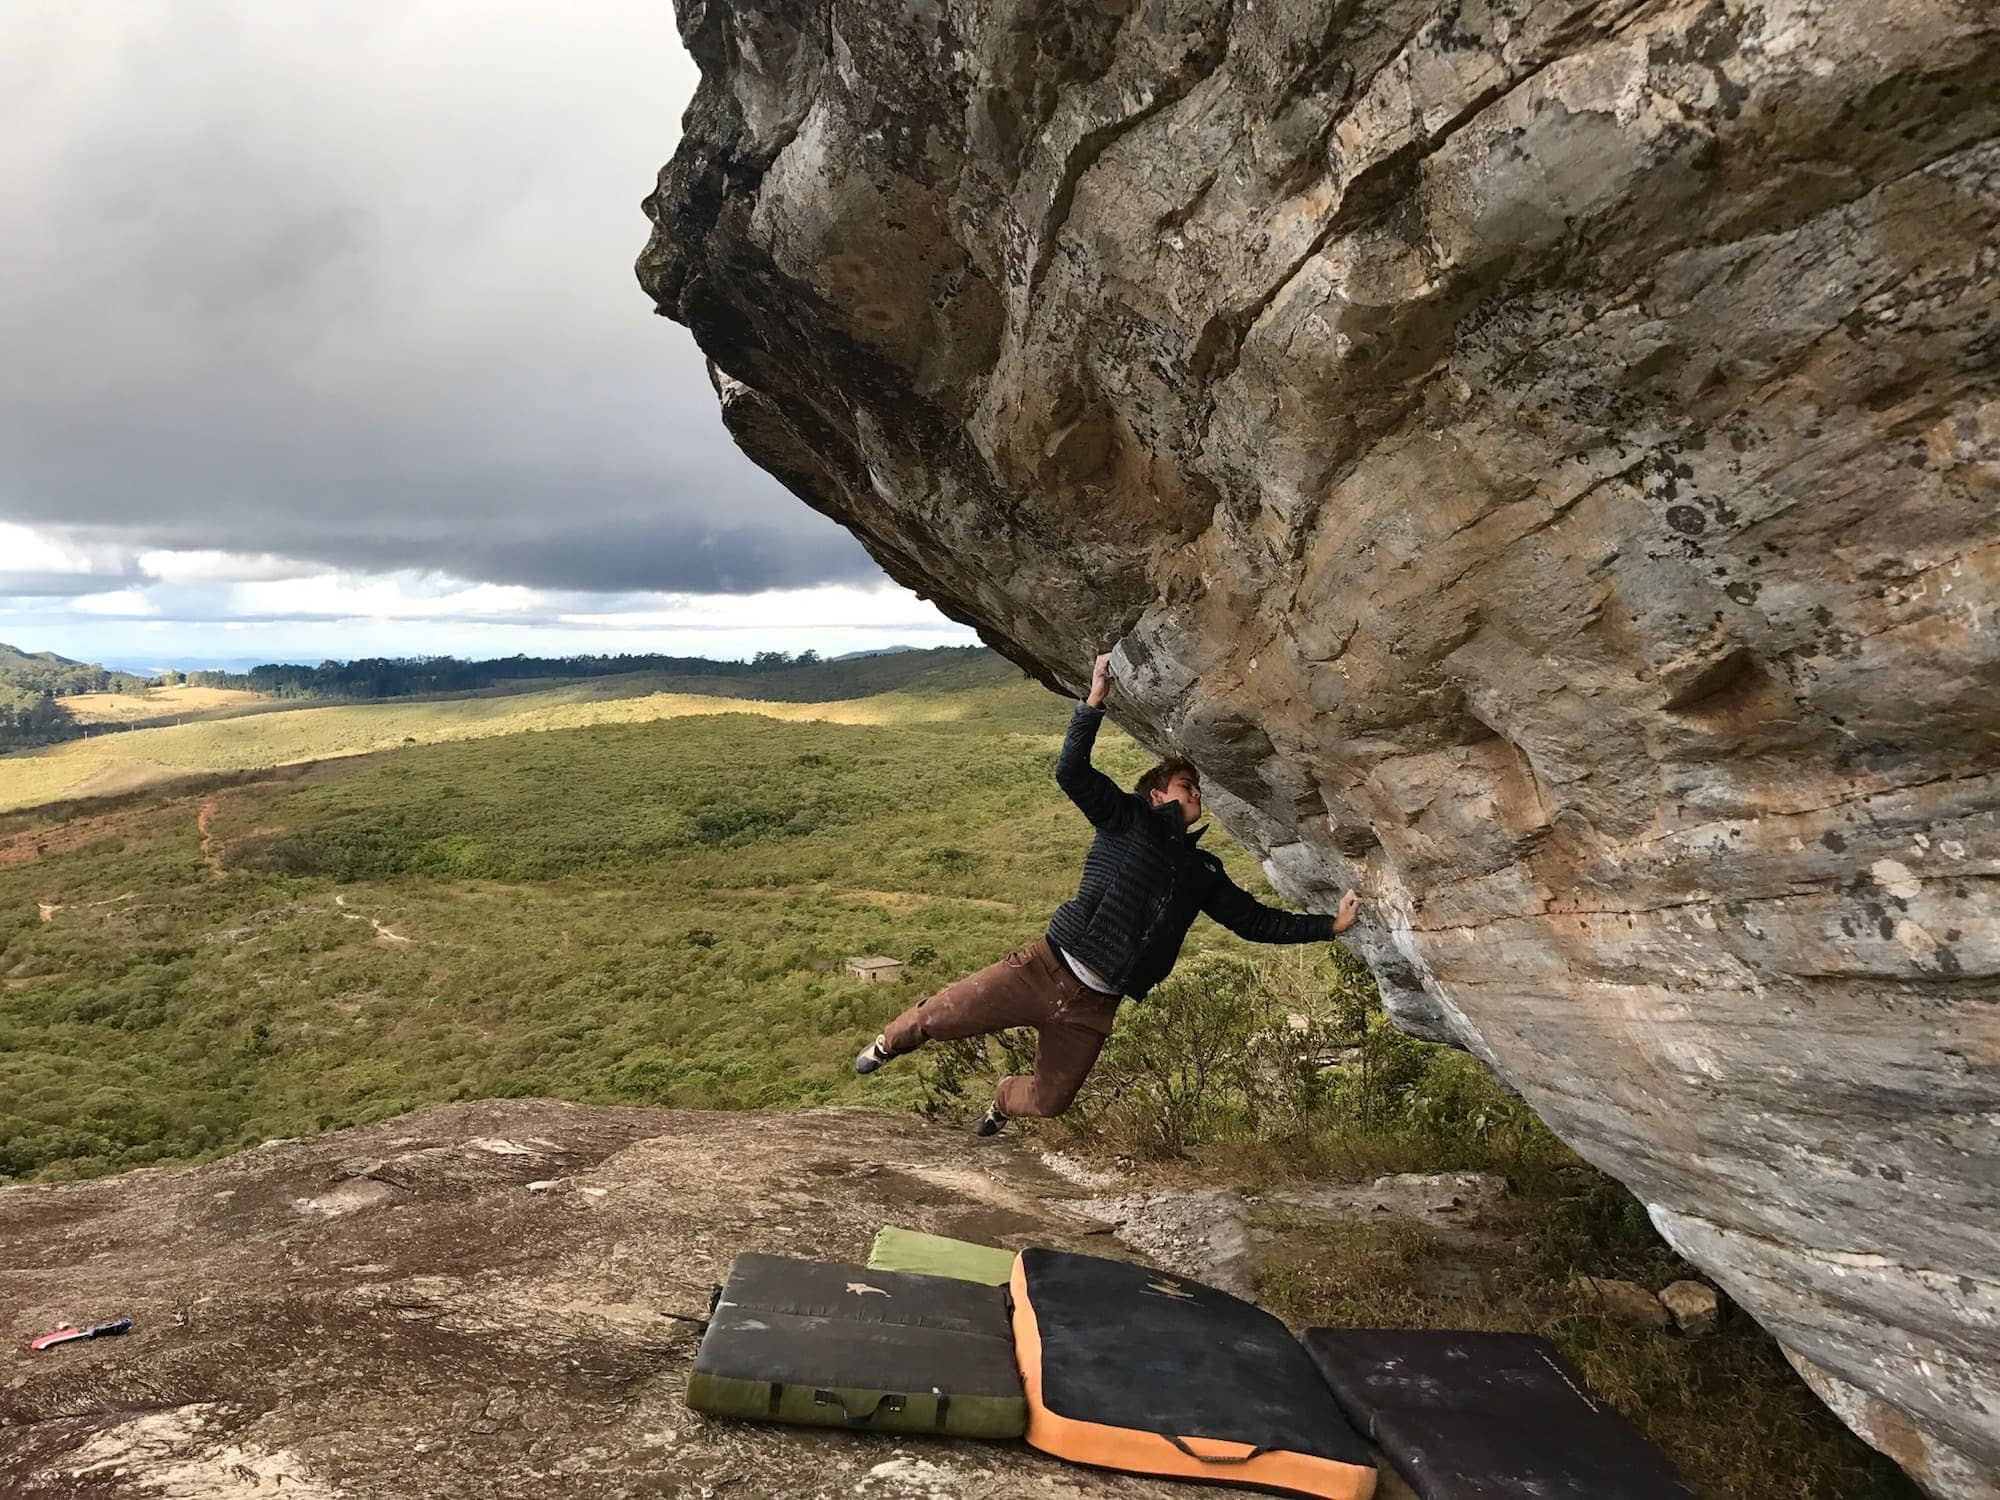 FrictionLabs Athlete Felipe Ho cuts feet while climbing this boulder